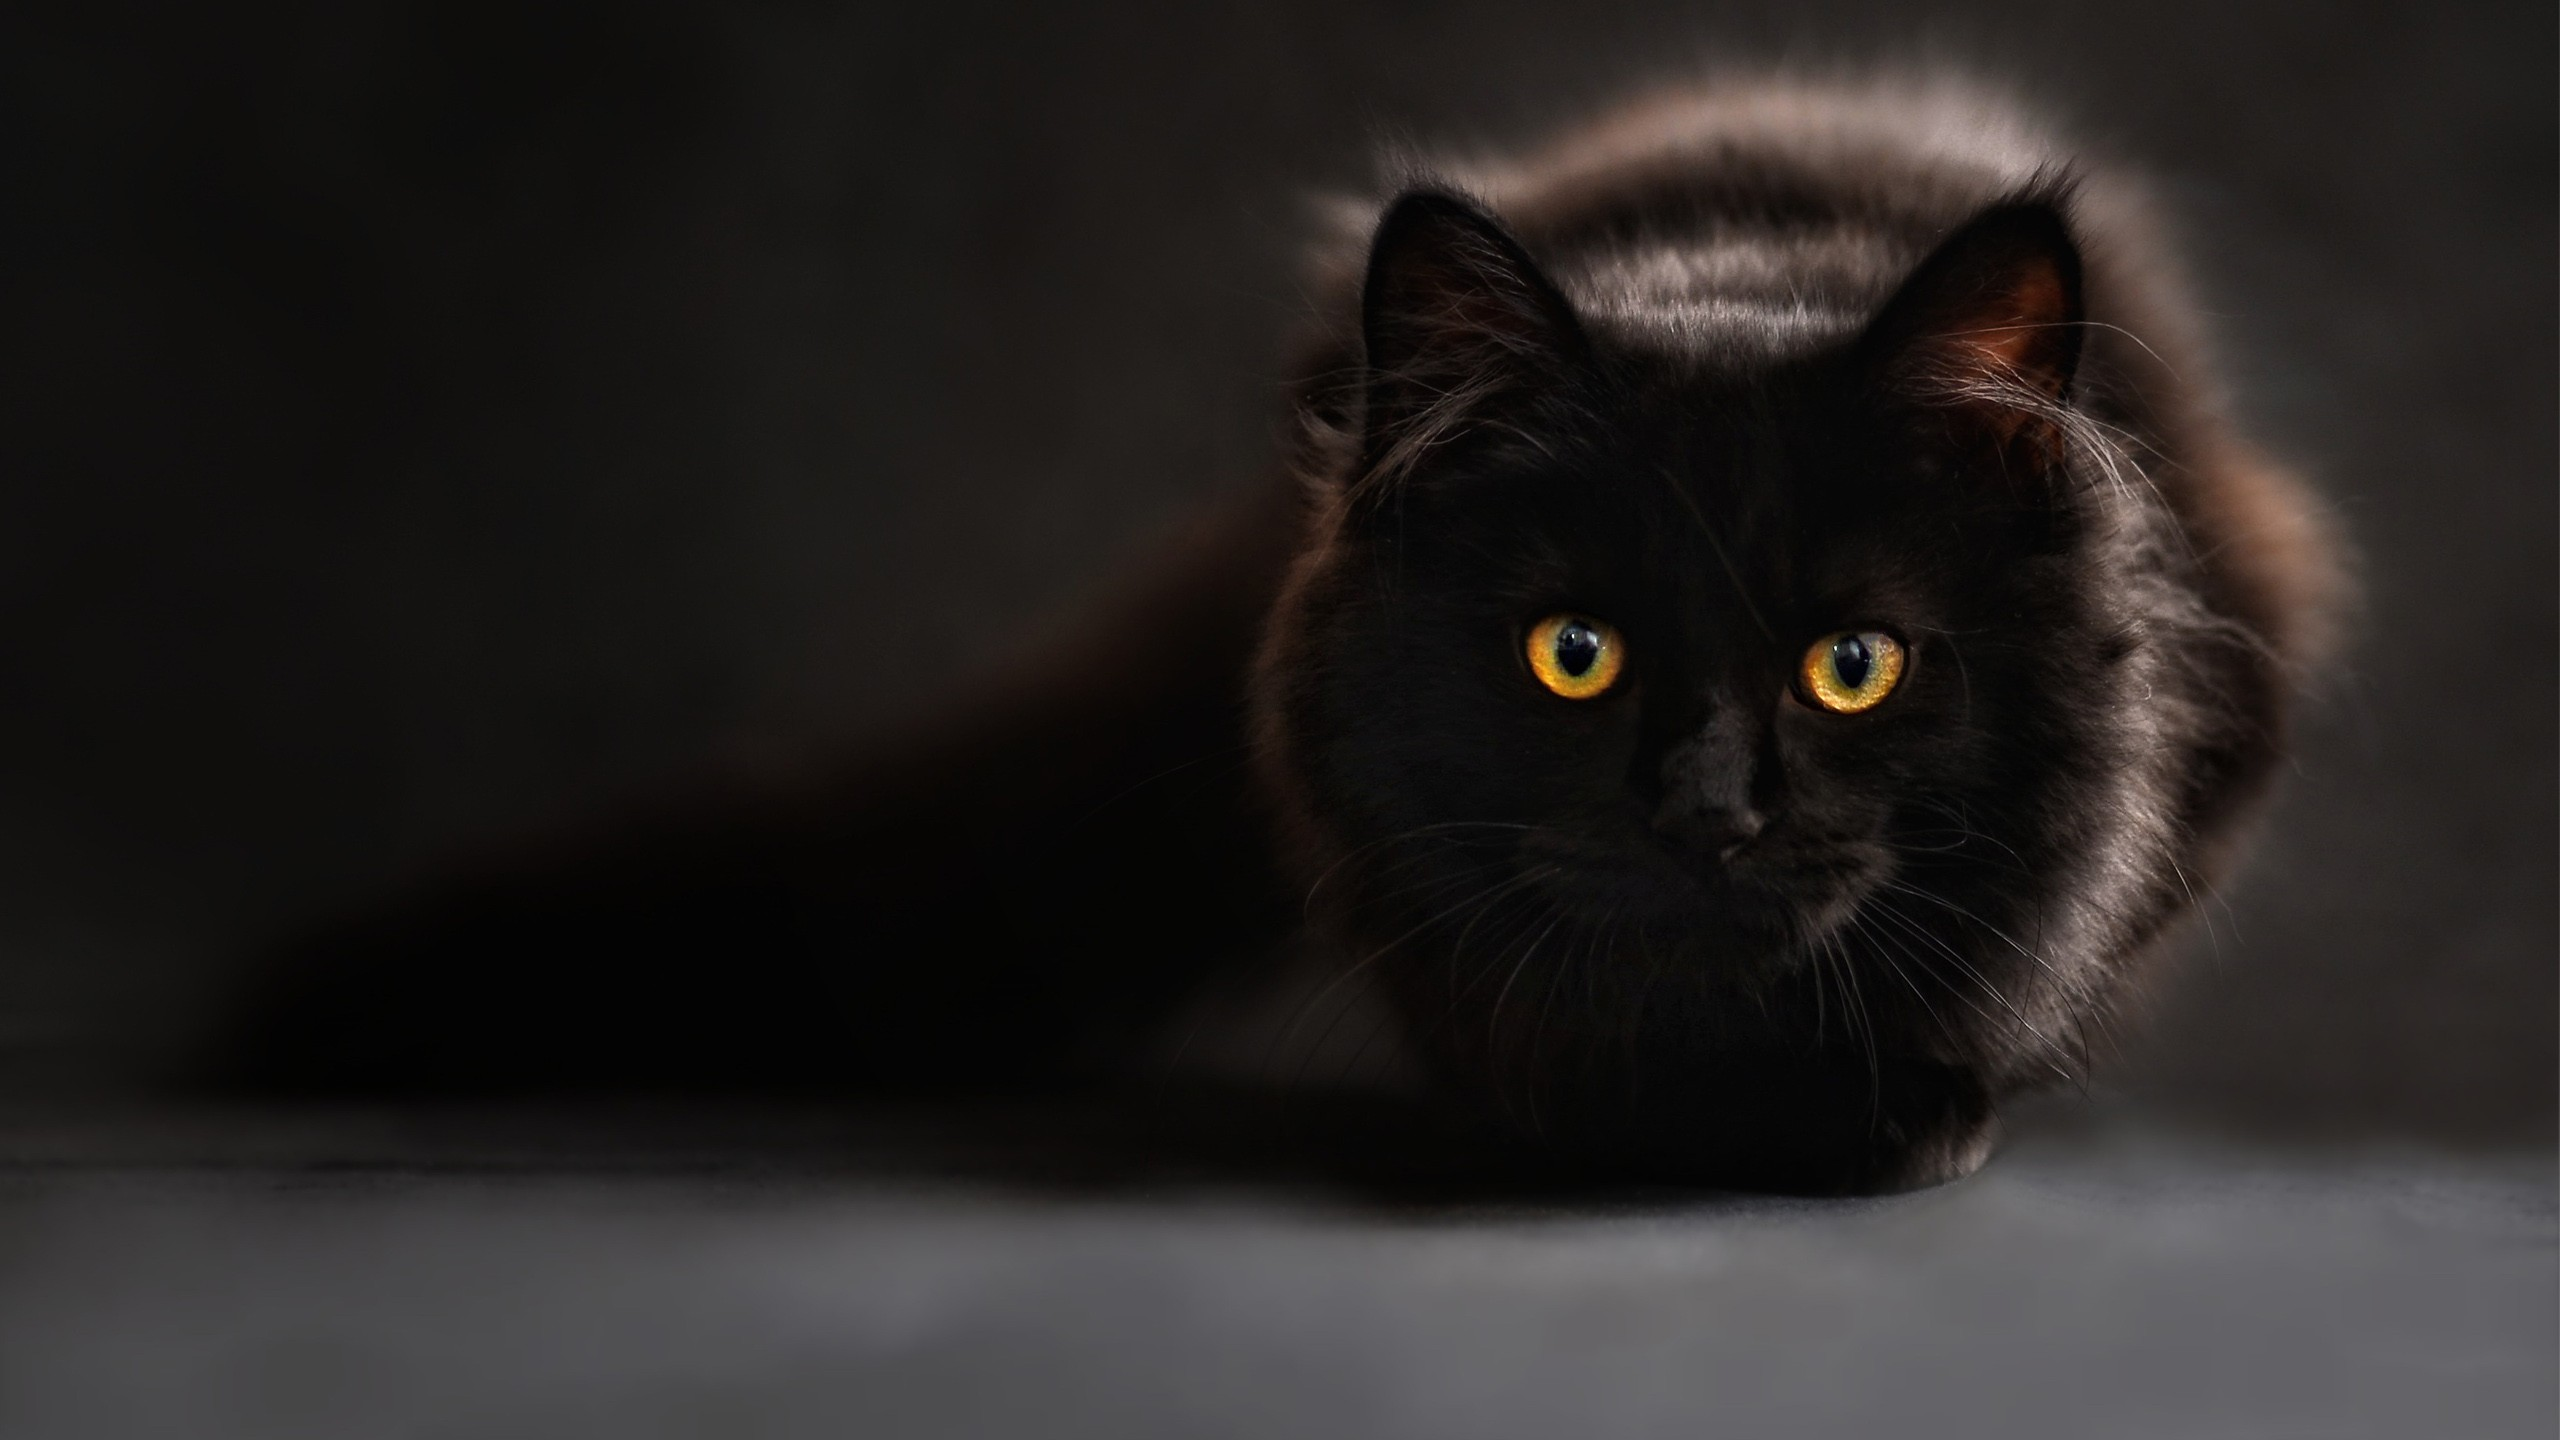 Cat Wallpaper Download Free Stunning Backgrounds For Desktop And